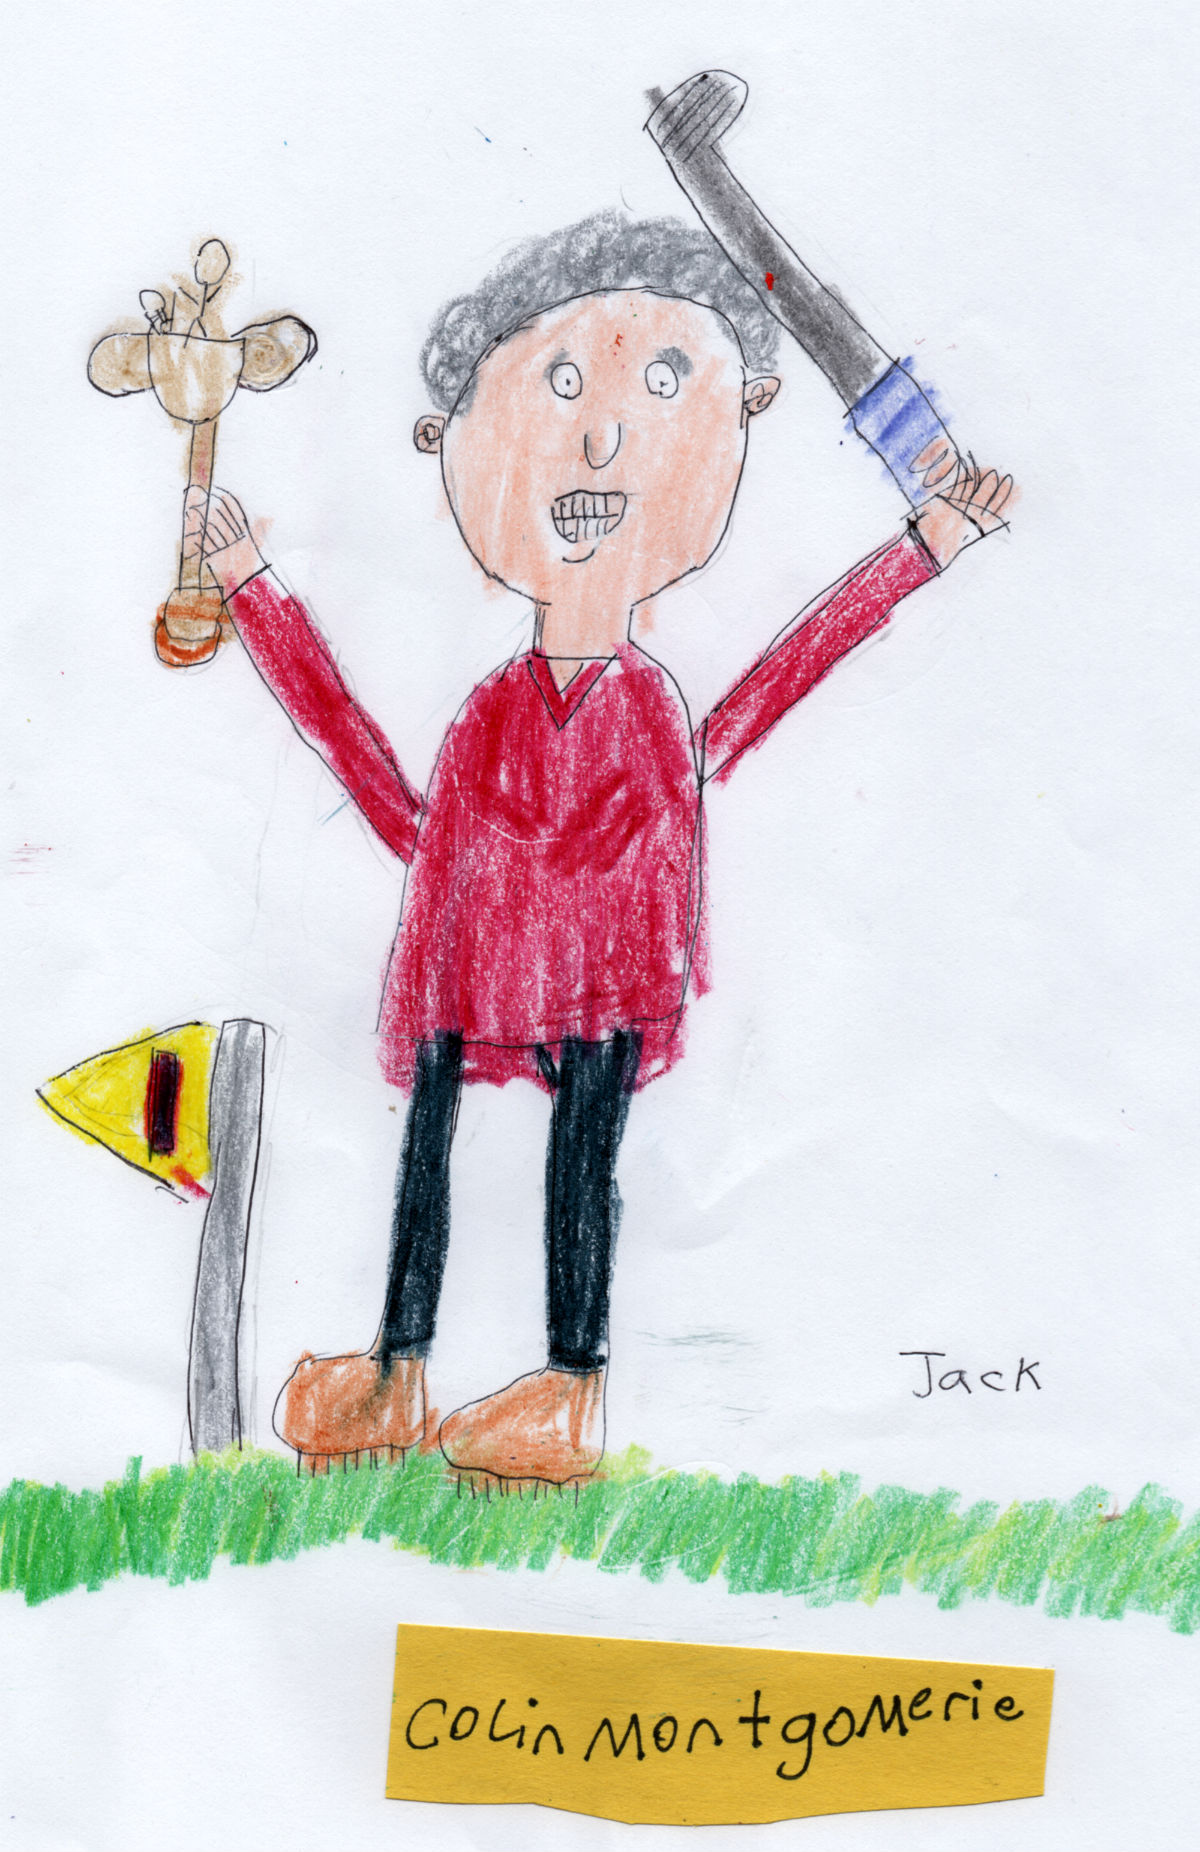 Scottish Golfer — Colin Montgomerie (#1 from Jack's 'Golf Collection')